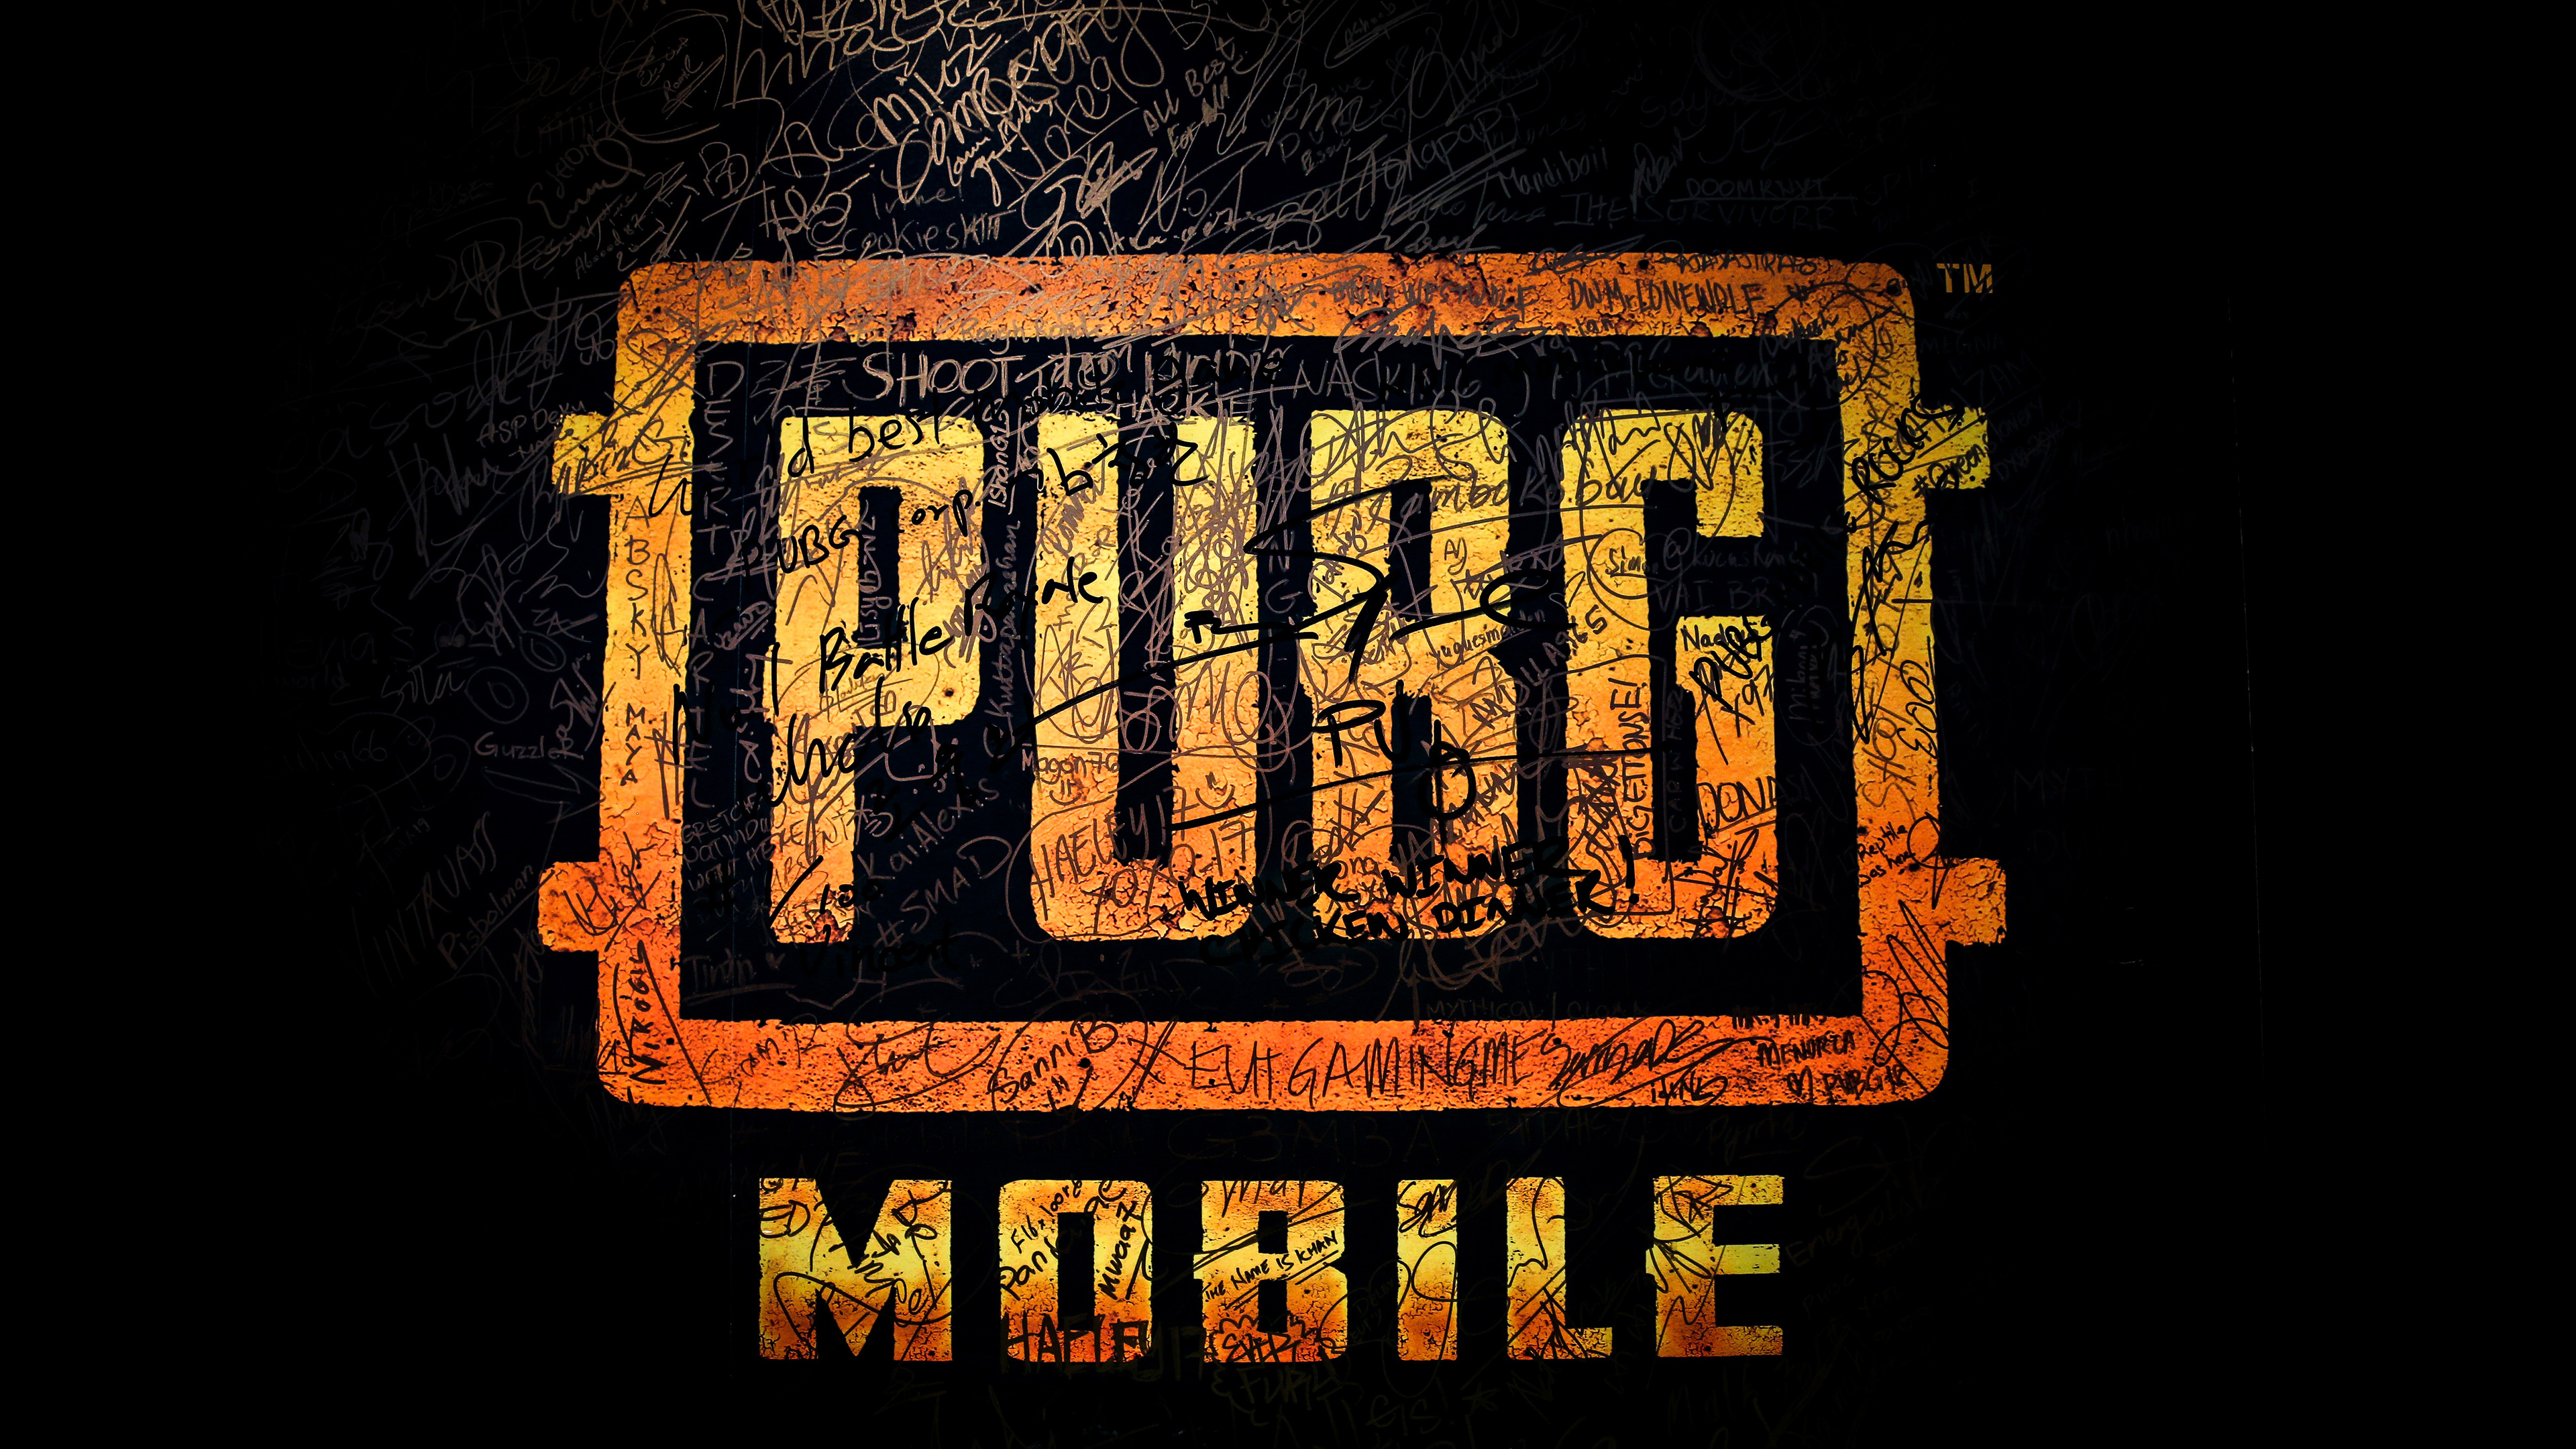 Wallpaper 4k Pubg Mobile 4k 2018 Games Wallpapers 4k Wallpapers 5k